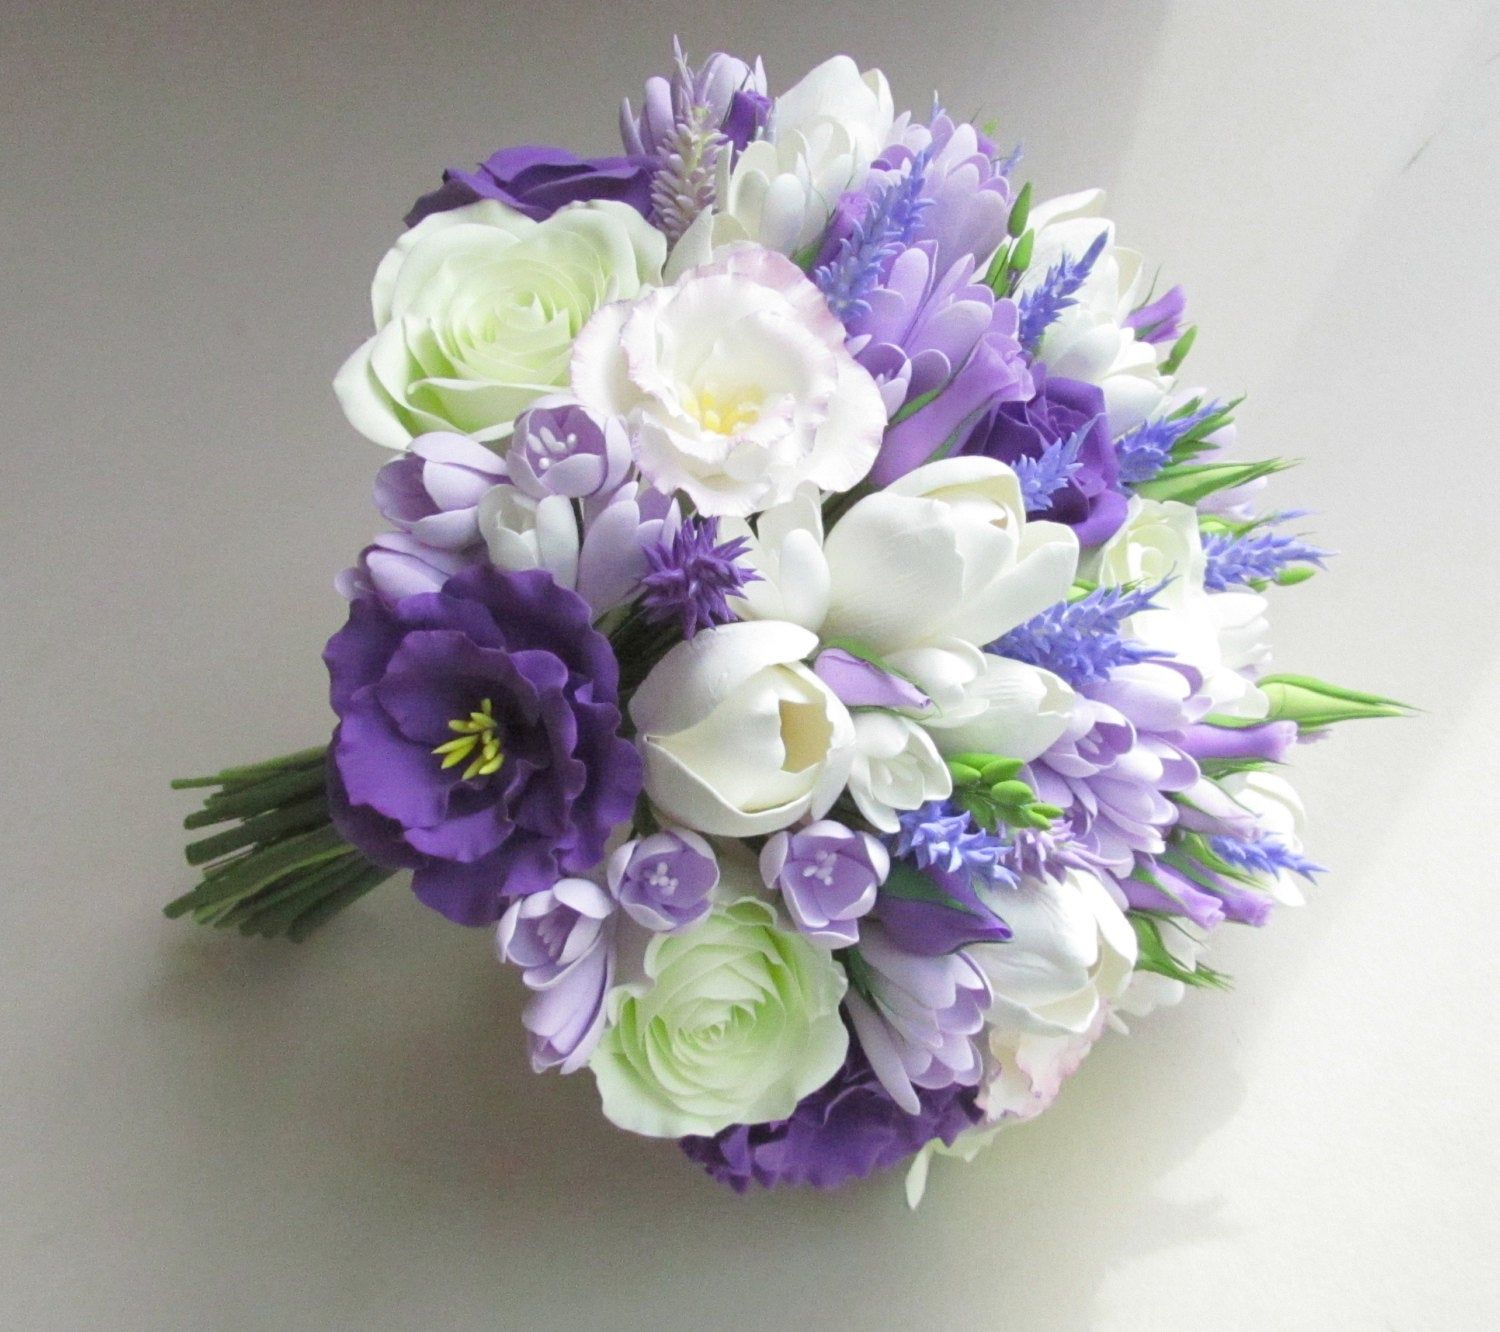 Freesia Eustoma Tulip Rose Lavender Bridal Bouquet Lilac Etsy White Wedding Bouquets Lavender Bridal Bouquet Rose Wedding Bouquet